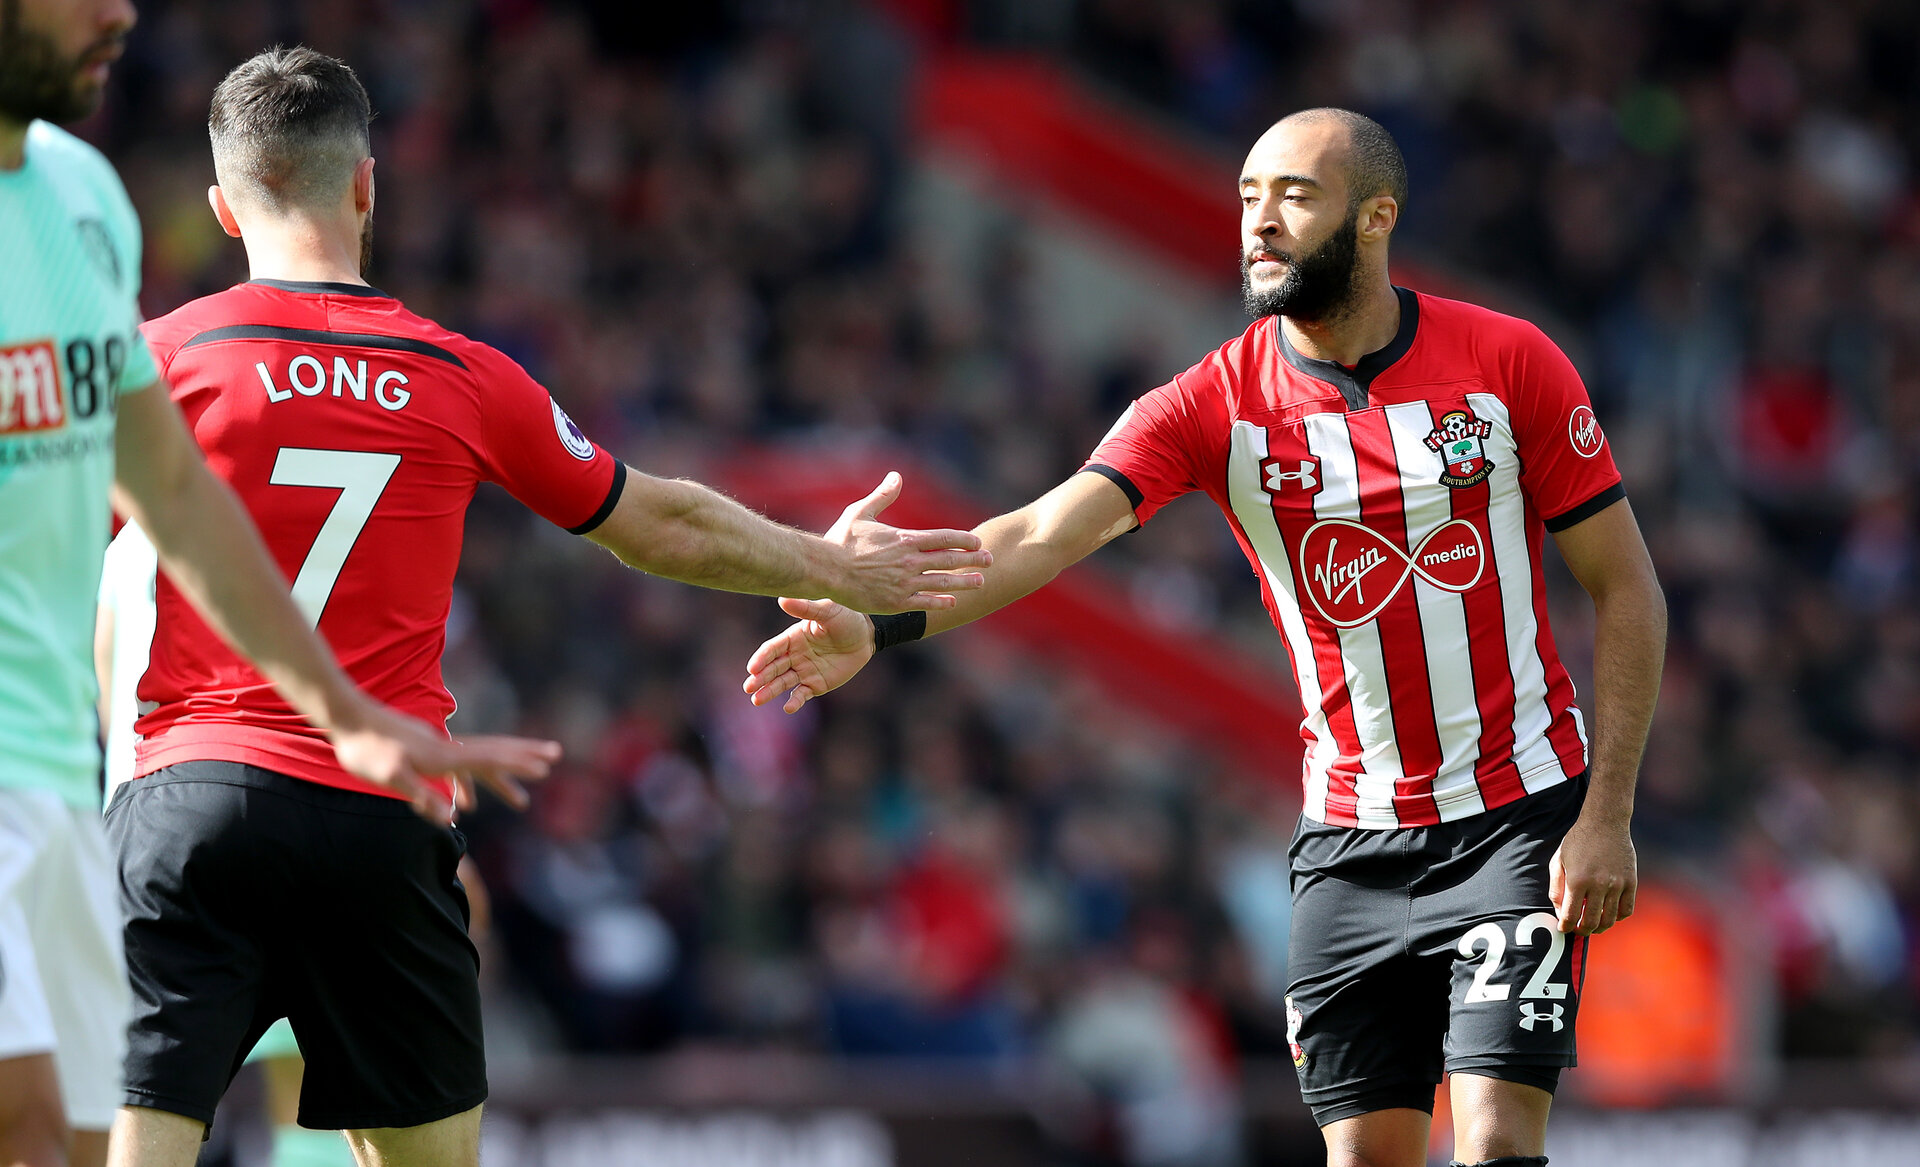 SOUTHAMPTON, ENGLAND - APRIL 27: Shane Long(L) and Nathan Redmond of Southampton during the Premier League match between Southampton FC and AFC Bournemouth at St Mary's Stadium on April 27, 2019 in Southampton, United Kingdom. (Photo by Matt Watson/Southampton FC via Getty Images)